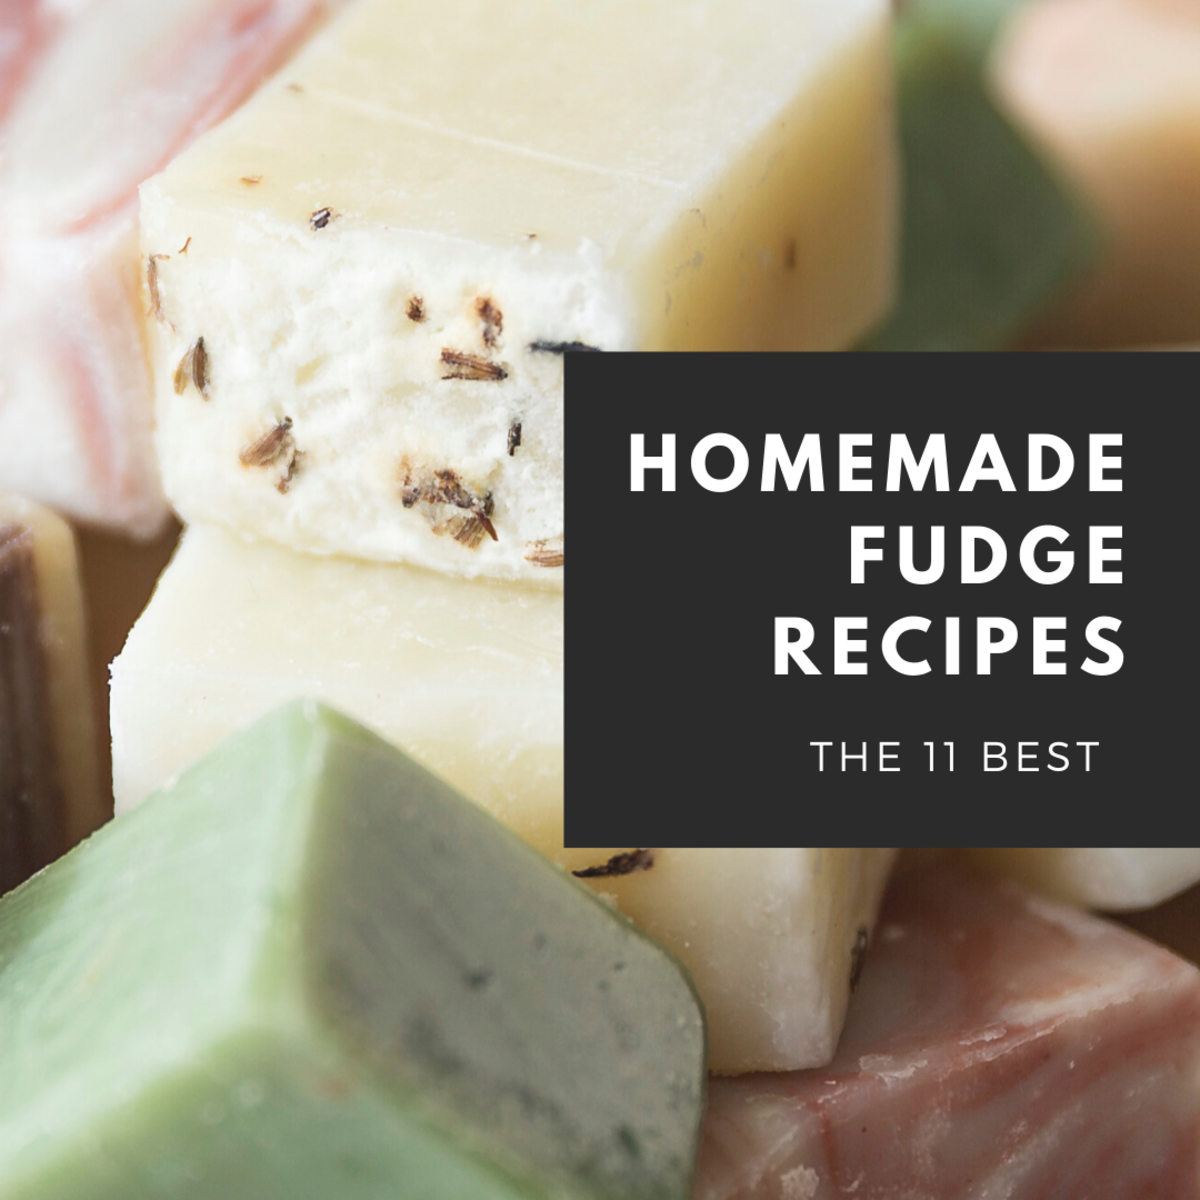 These recipes will make your mouth water!